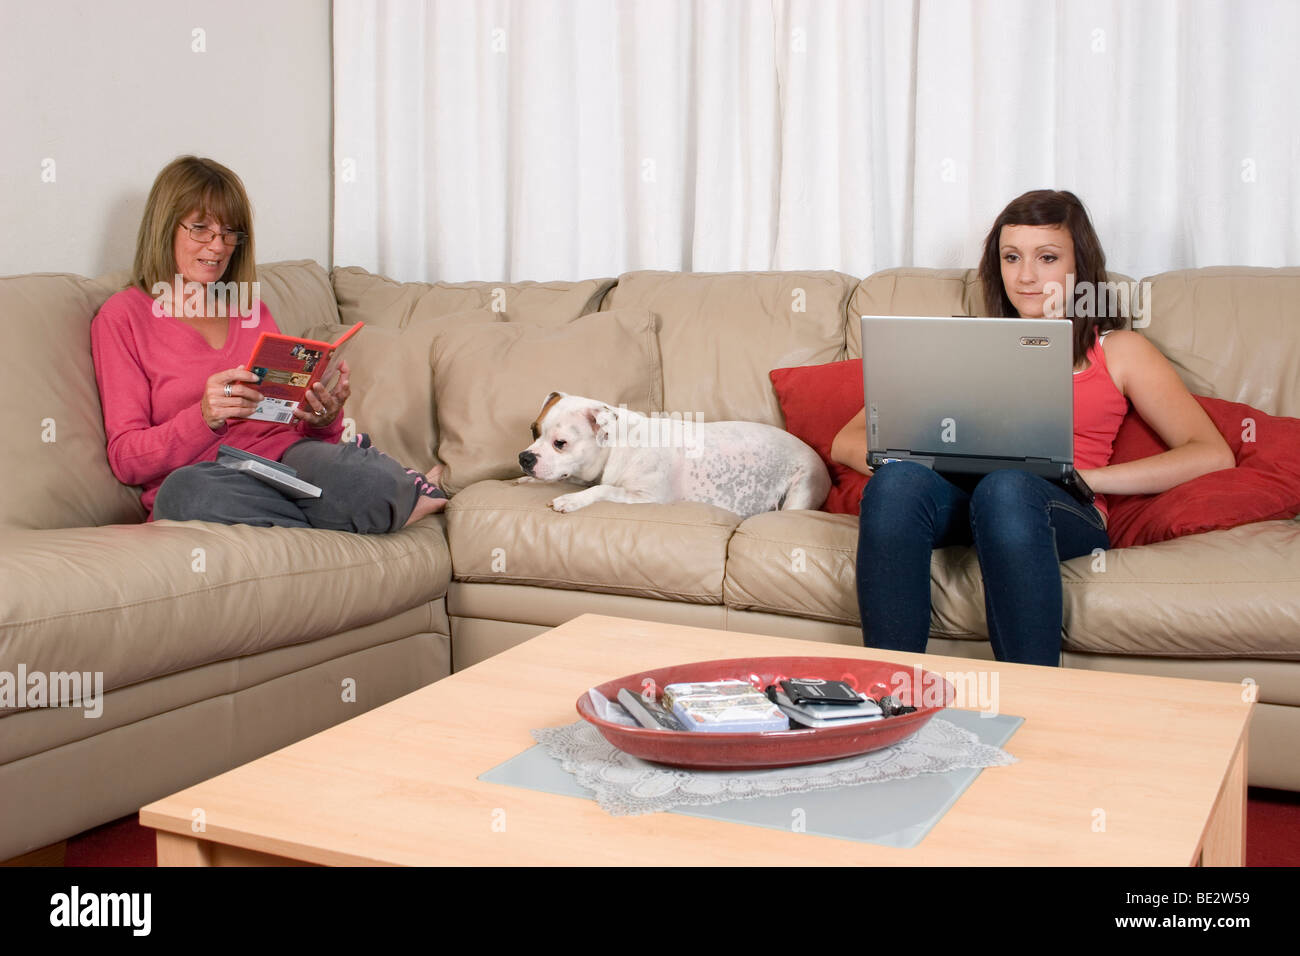 staffordshire bull terrier dog sitting between owners on sofa - Stock Image